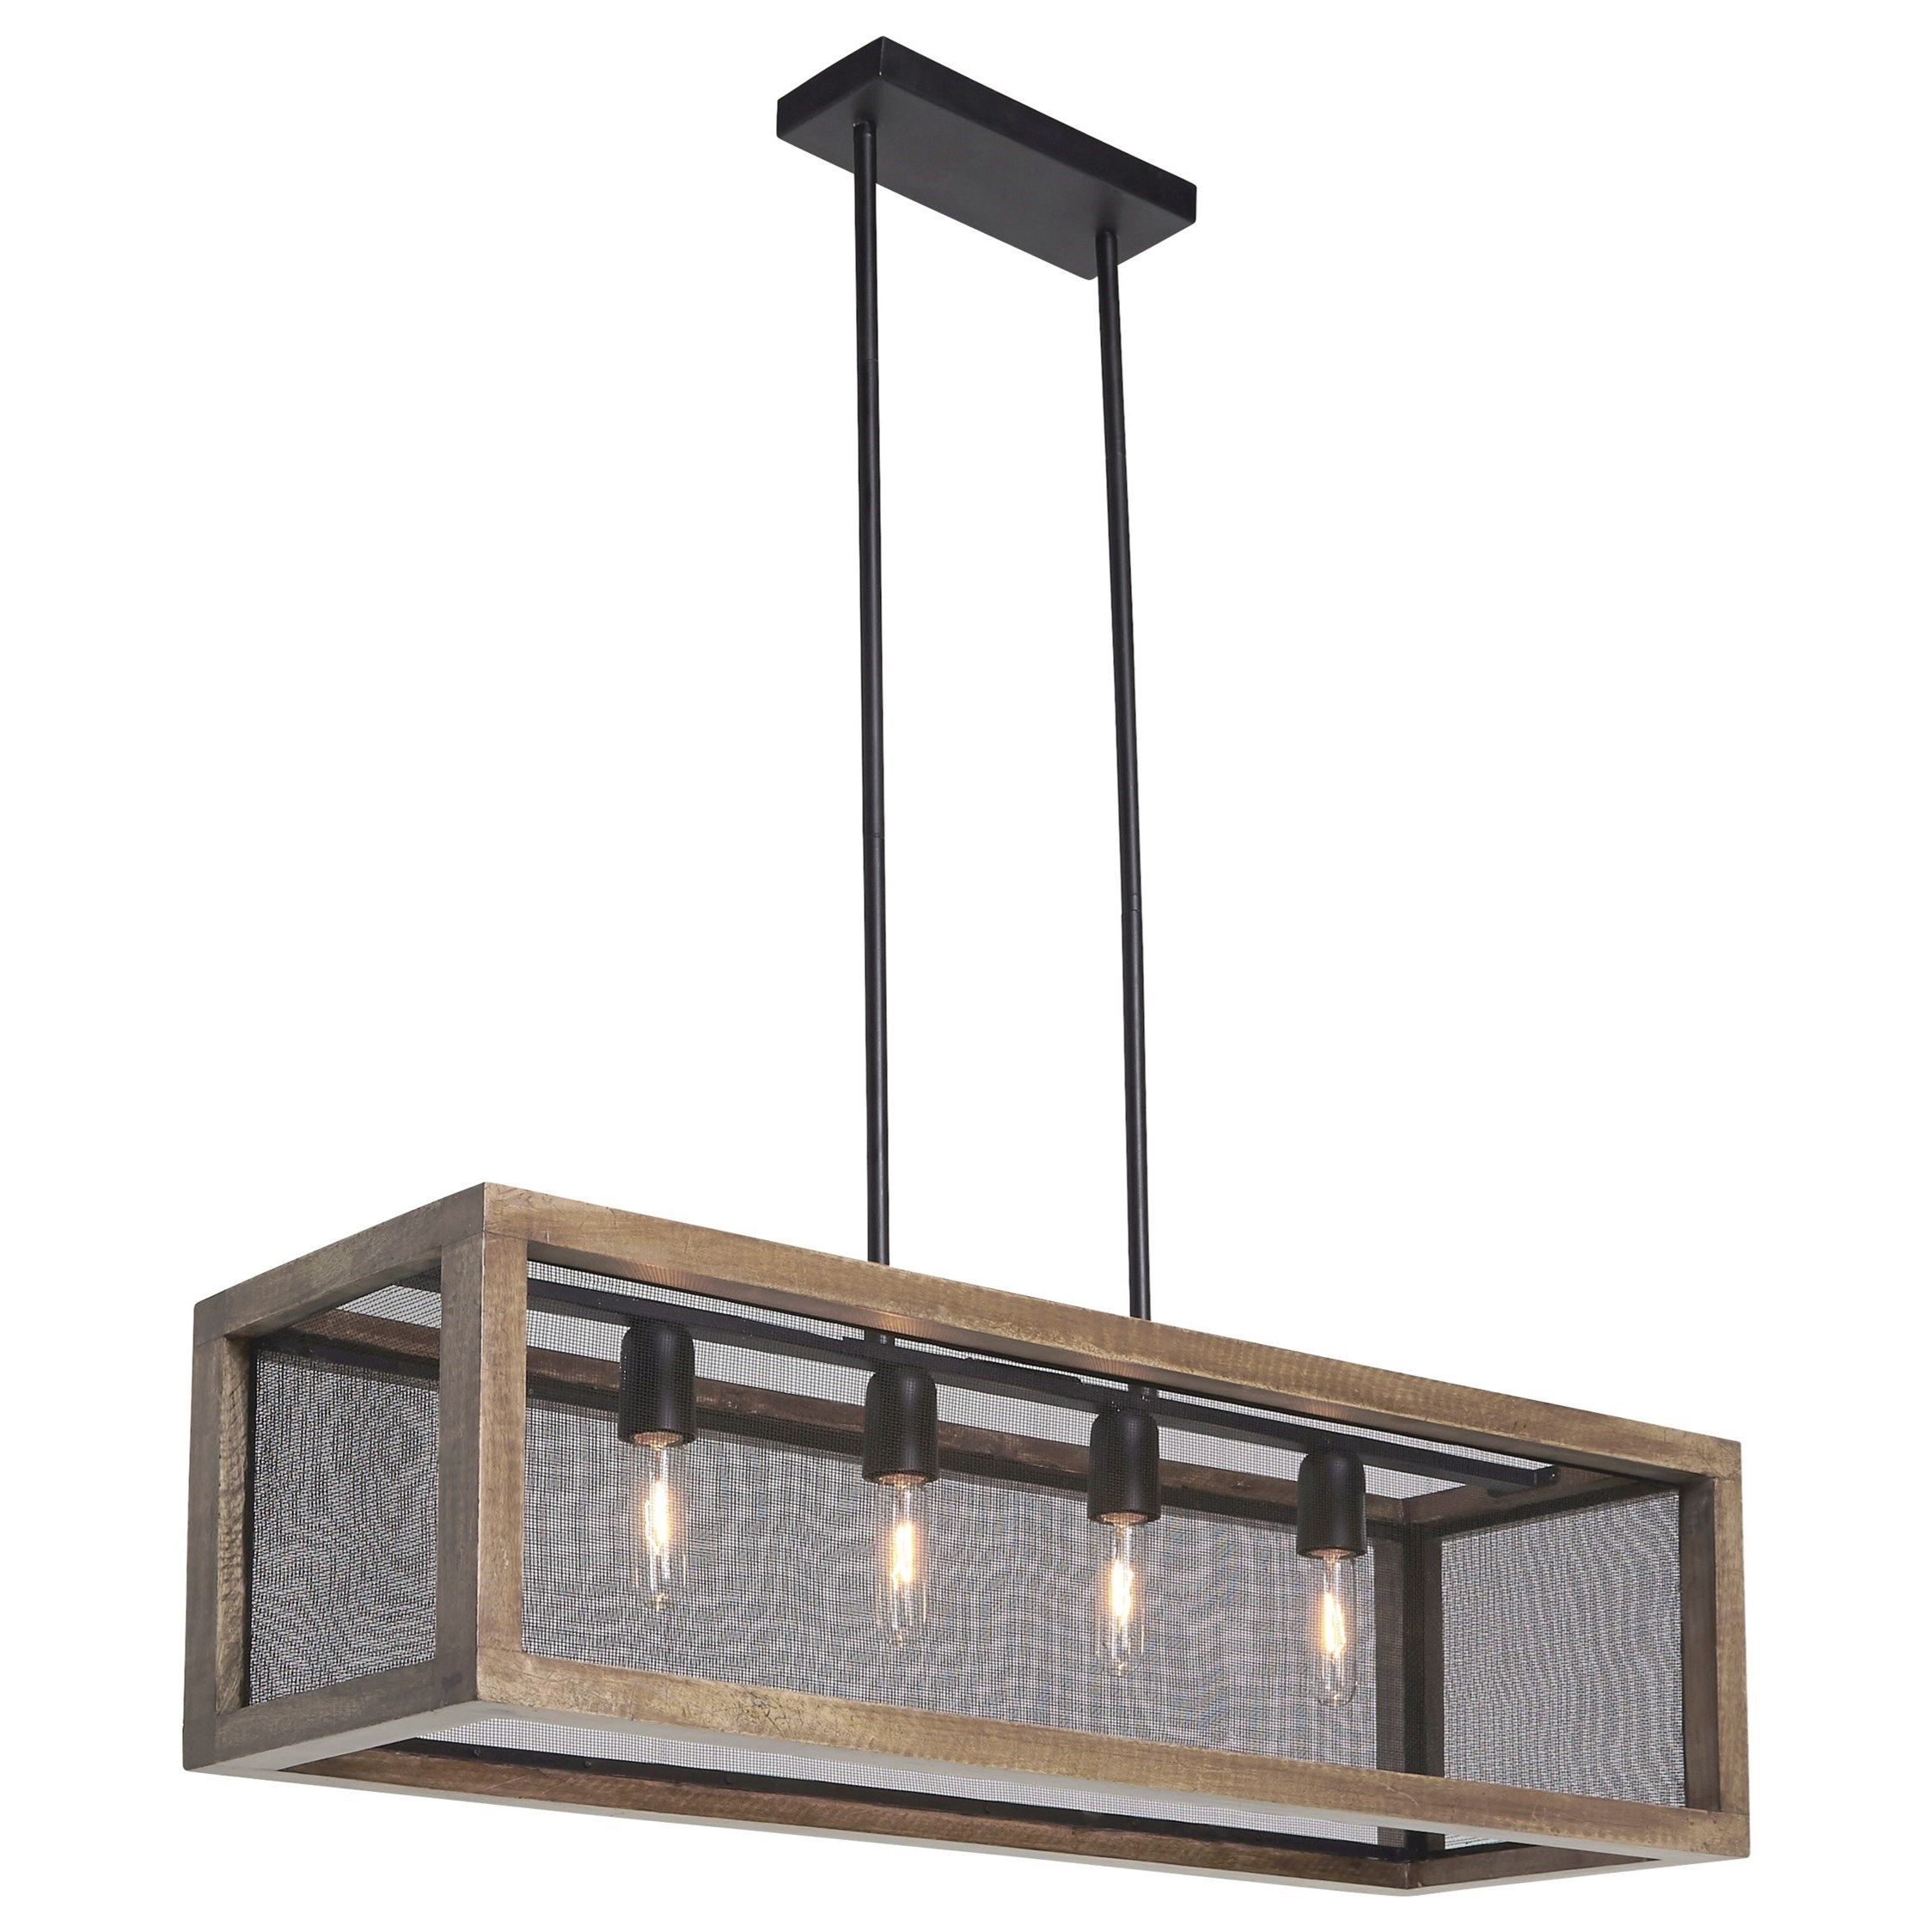 Pendant Lights Jodene Brown/Black Wood Pendant Light by Signature Design by Ashley at Northeast Factory Direct